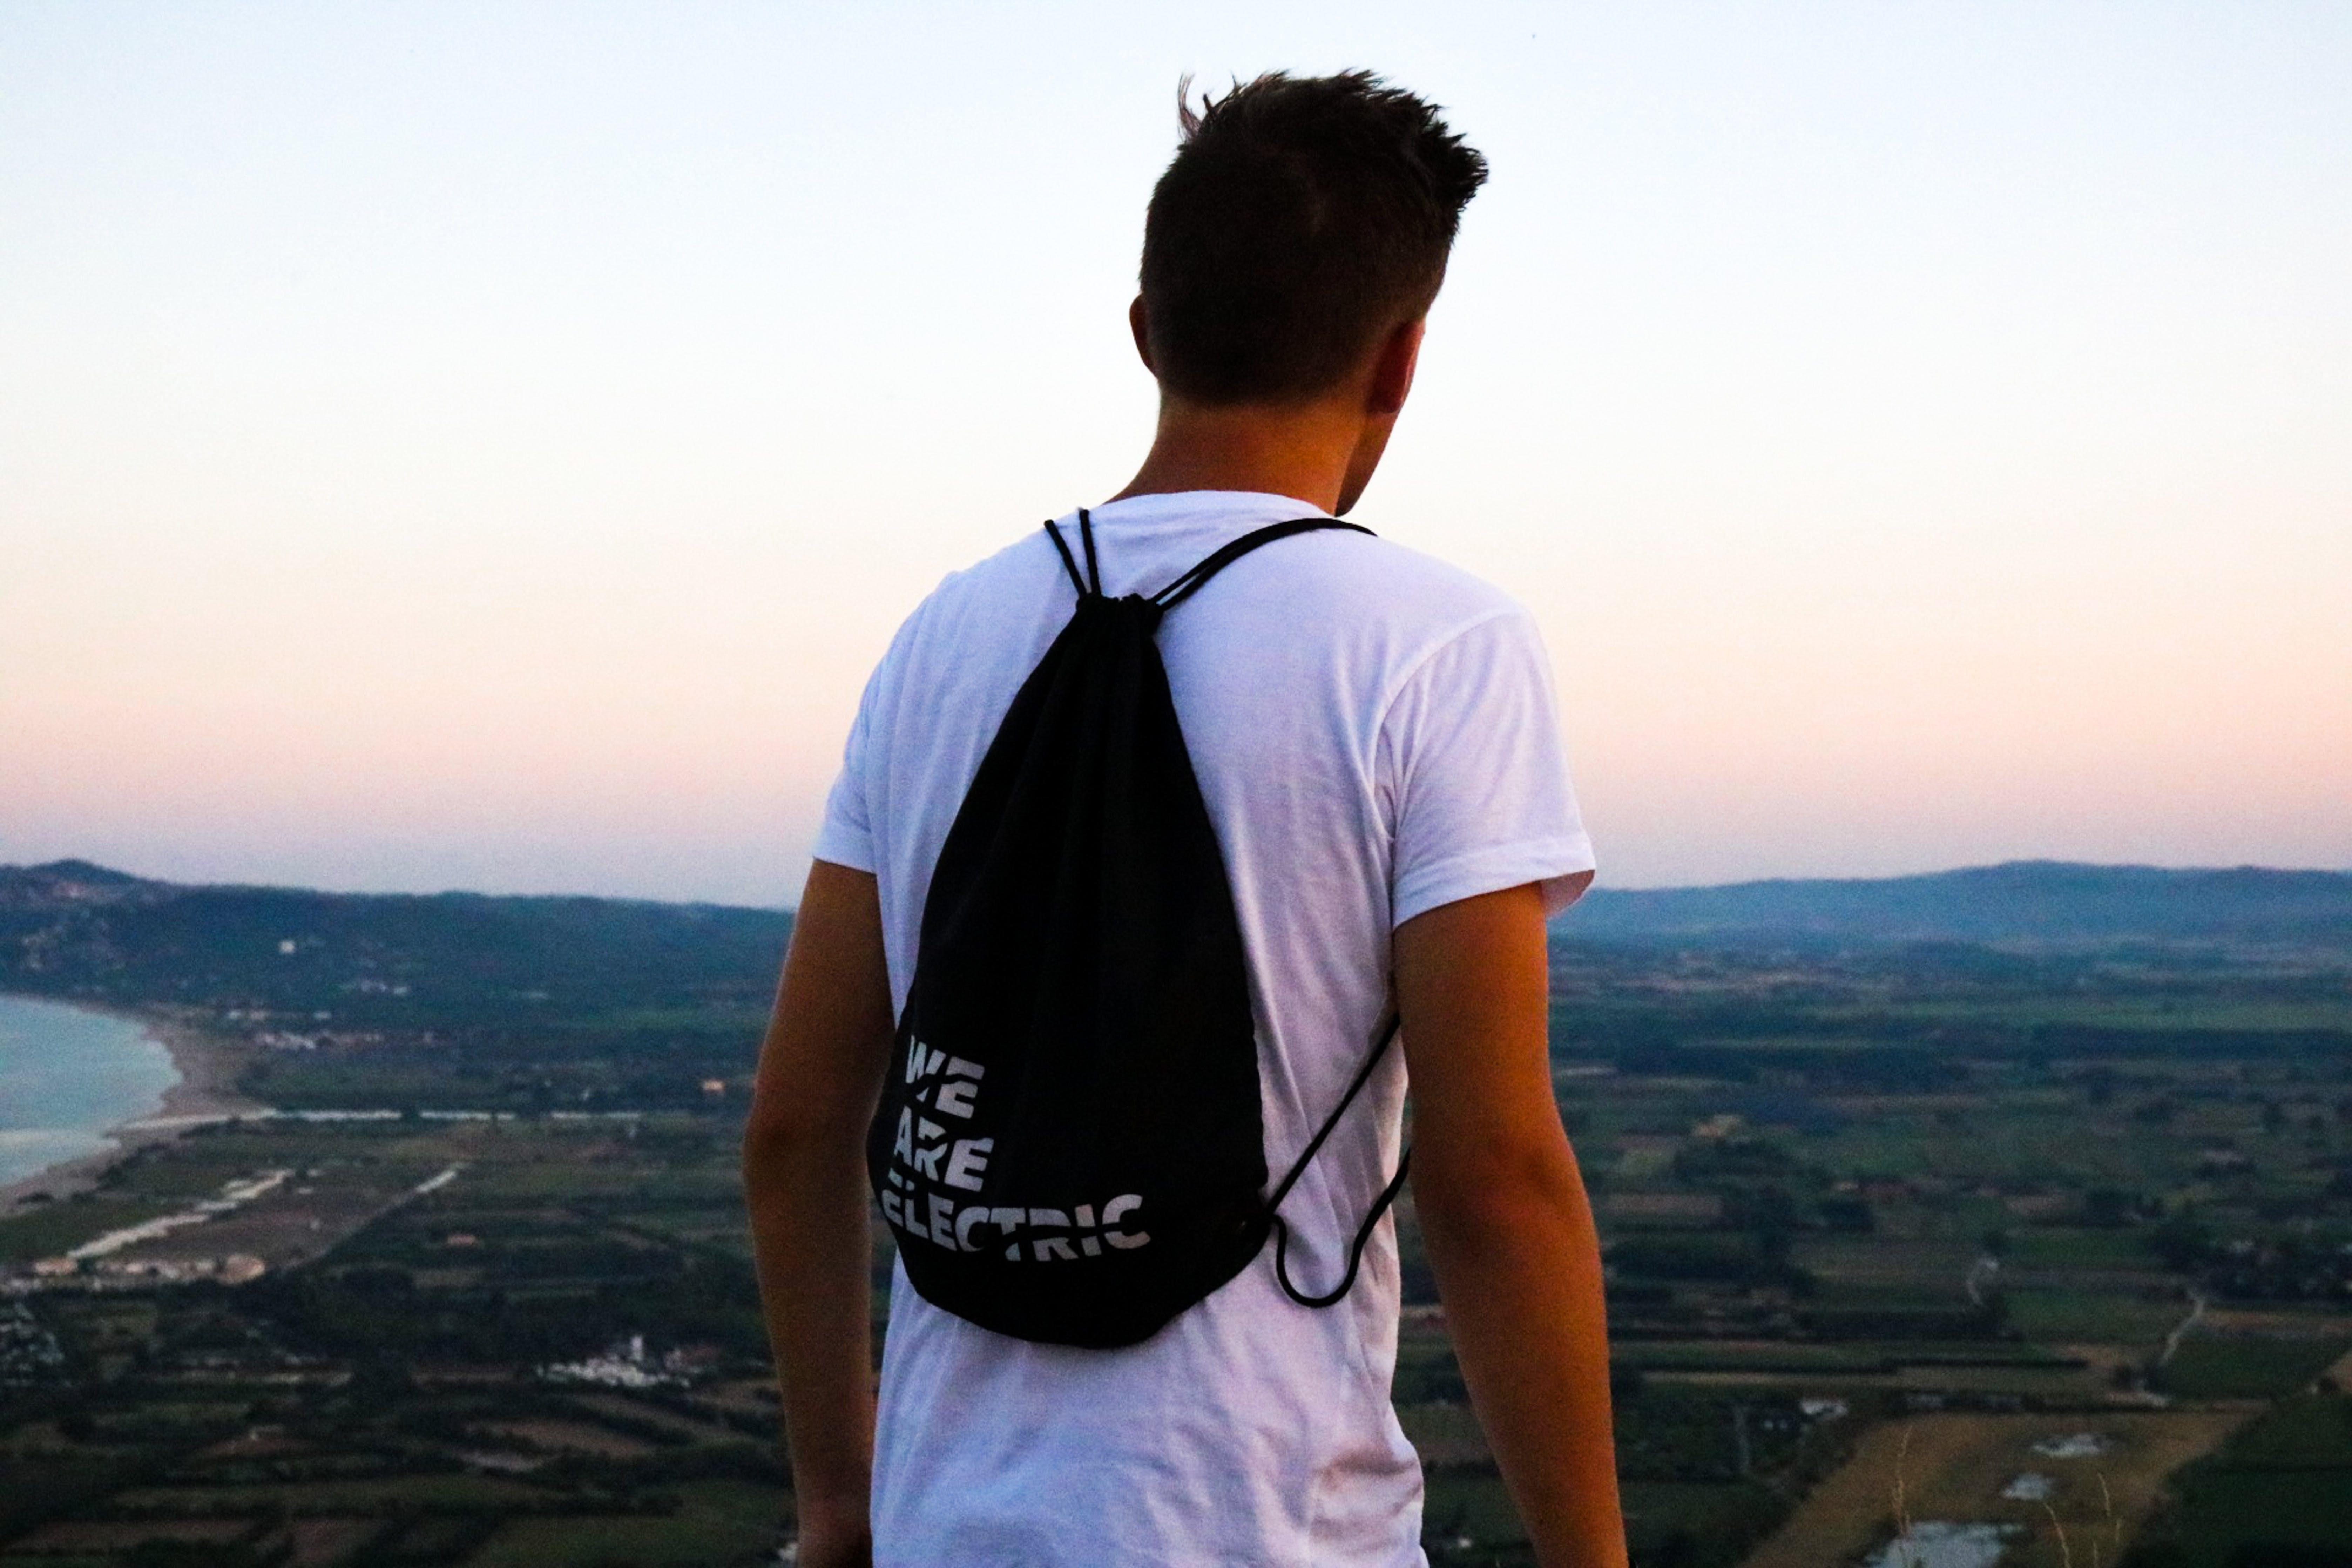 Man In White T-shirt With Black String Bag